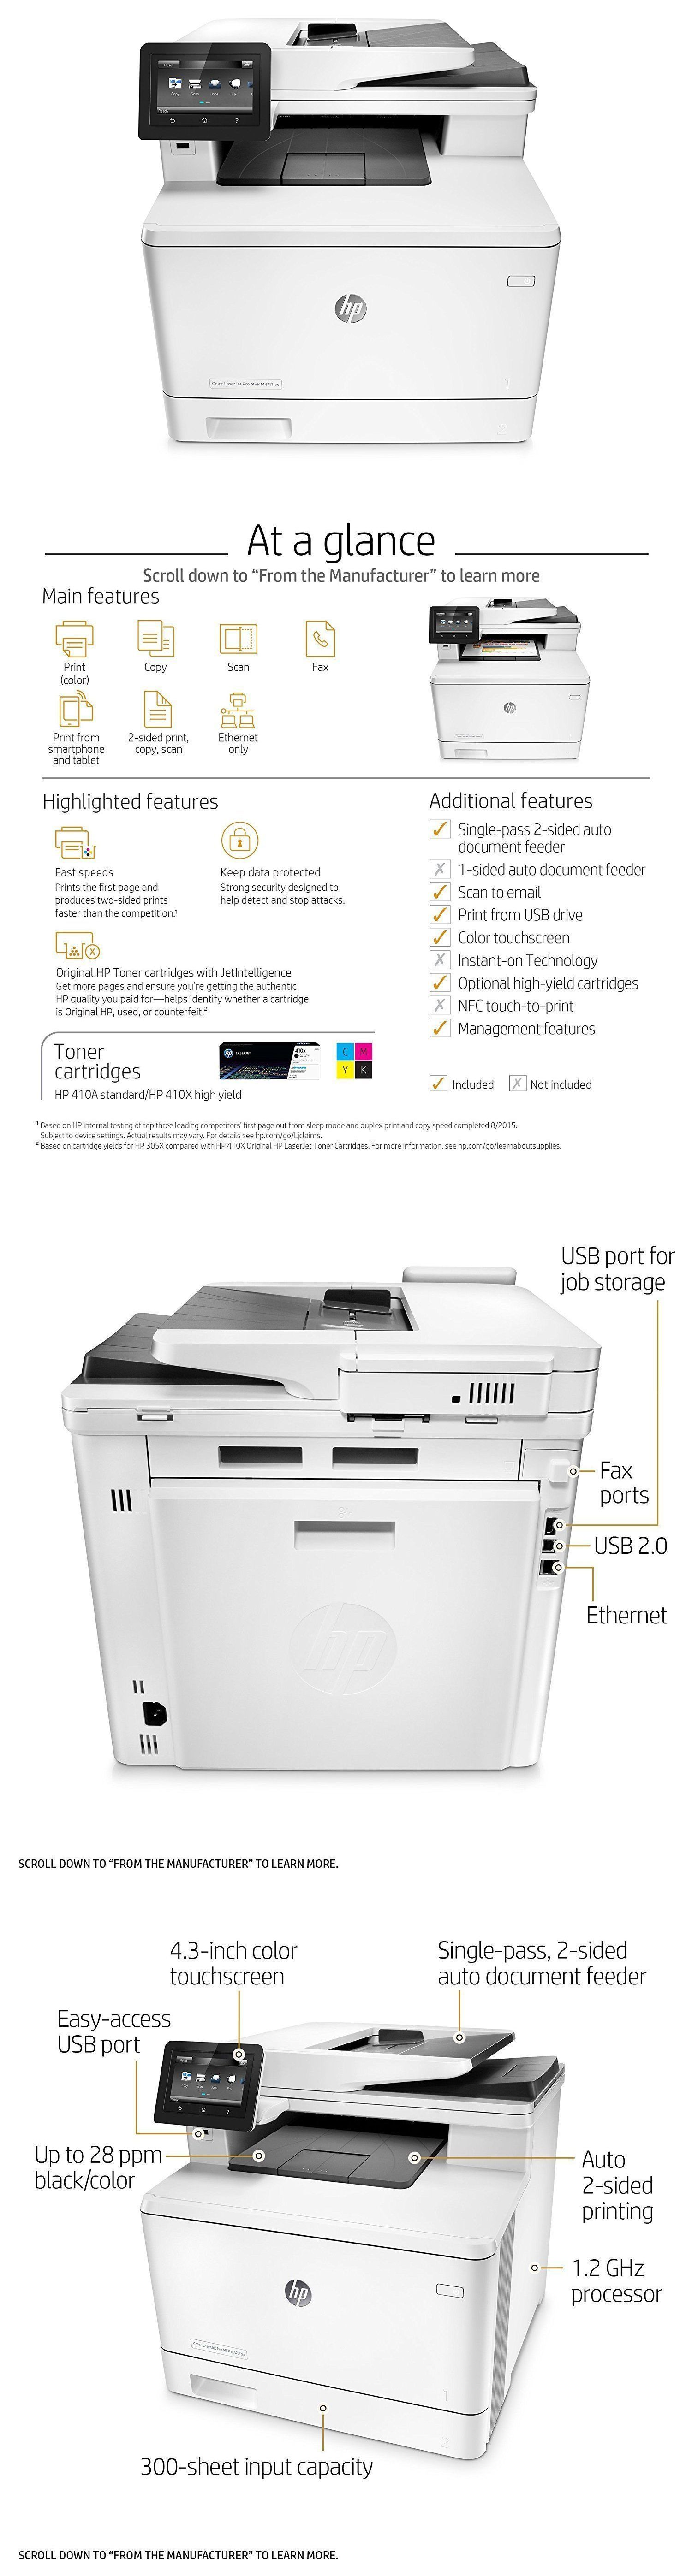 New Hp Laserjet Pro M477fdn All In One Color Printer Cf378a Free Shipping Color Printer Printer All In One